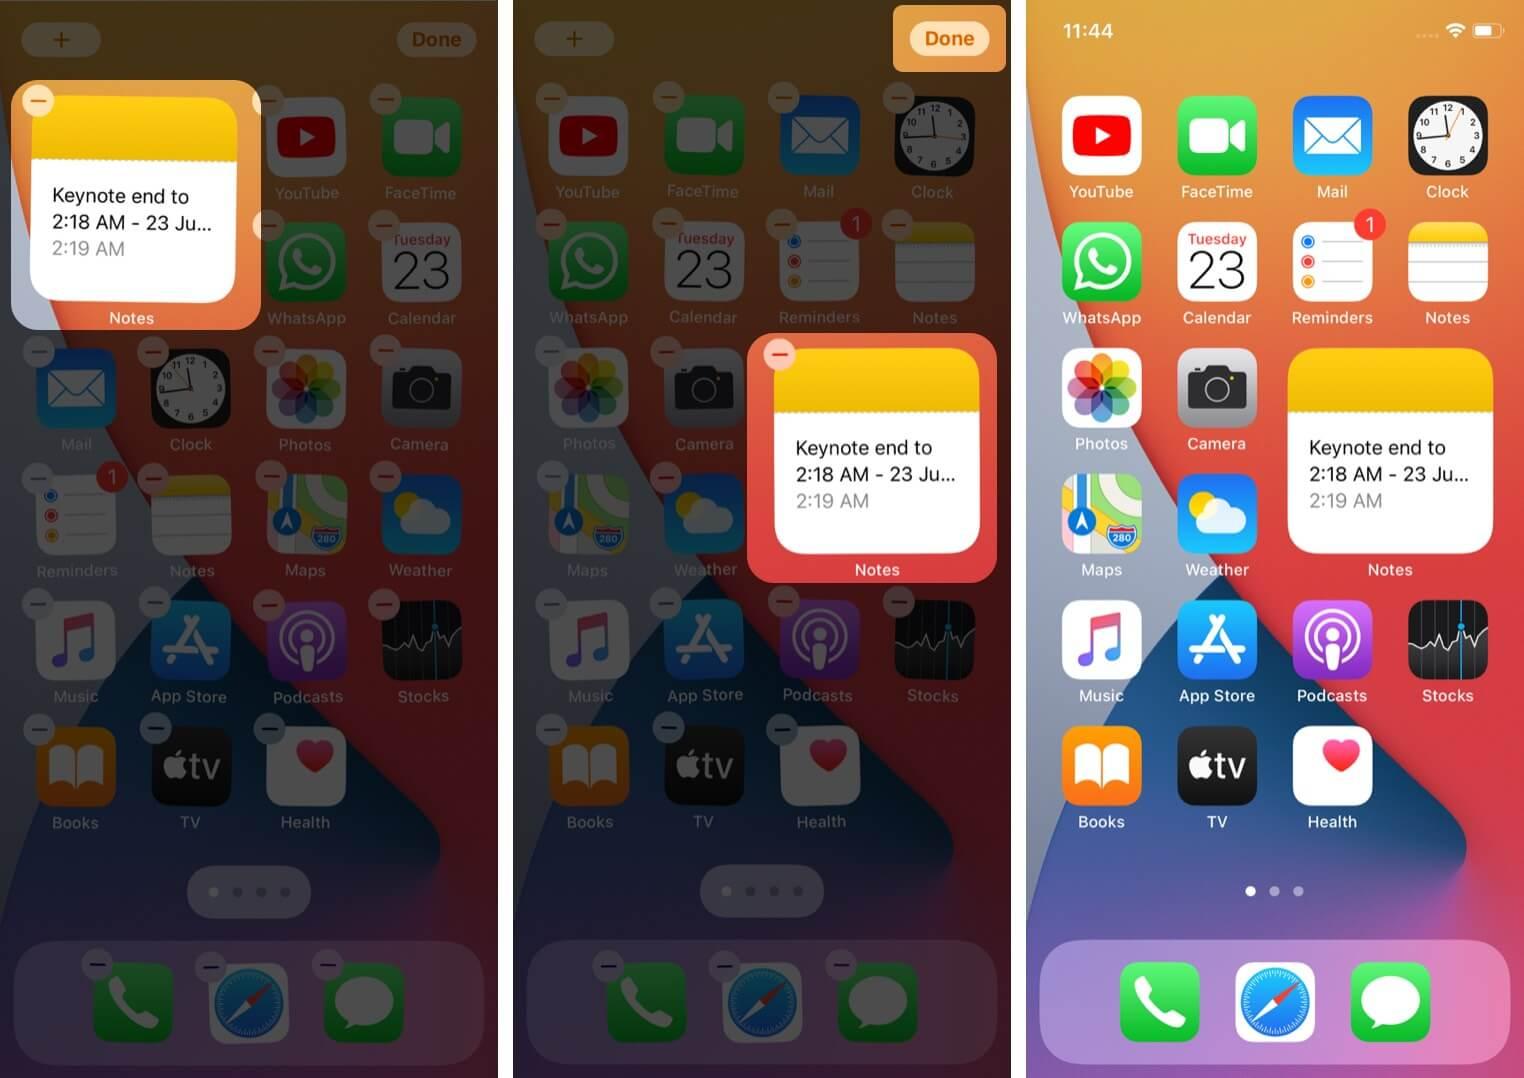 rearrange widget and tap on done to add widget from widget gallery to iphone home screen